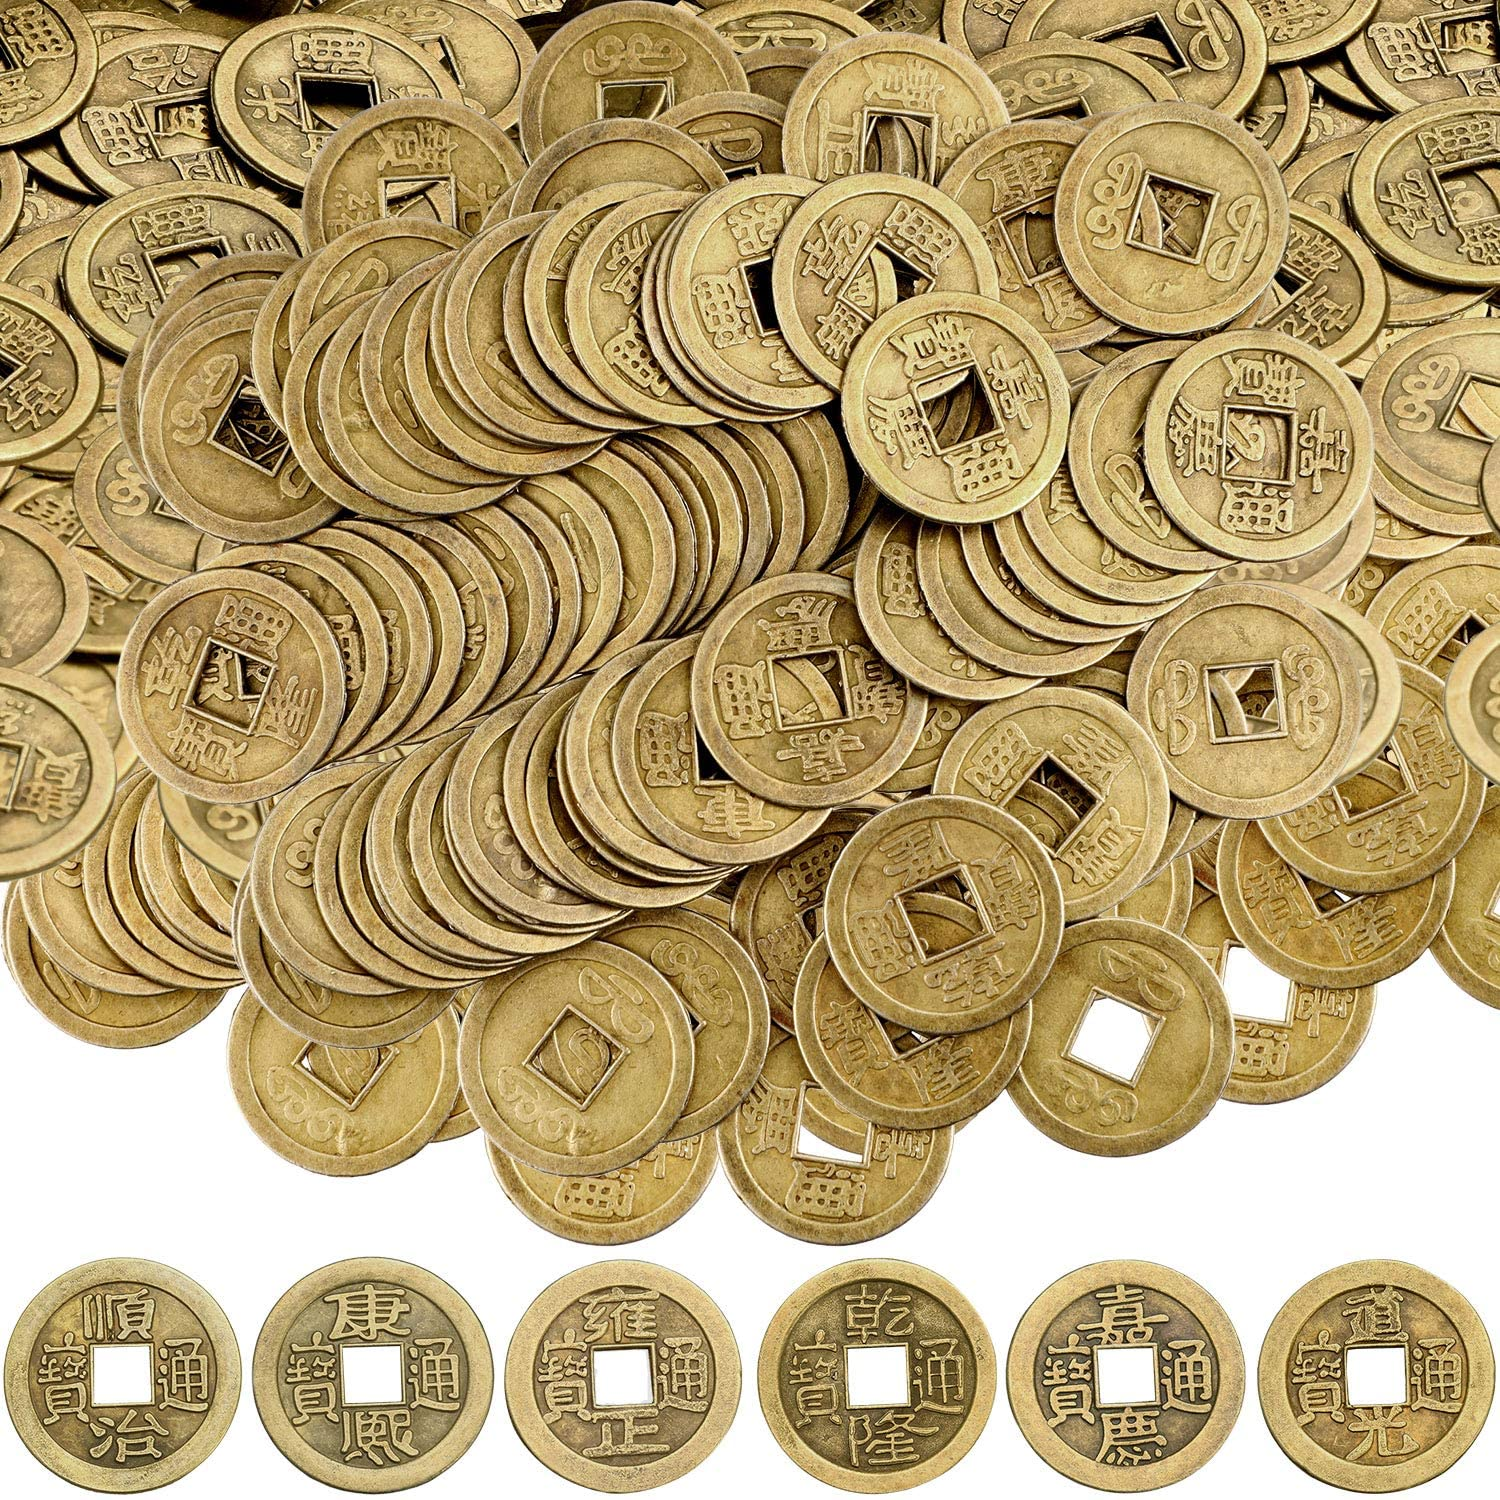 Chinese New Year Coin feng Shui Fortune i-Ching Money Good Luck Culture Gold Health Wealth Ancient Dynasty emper(100, 0.8 Inch) or Charms